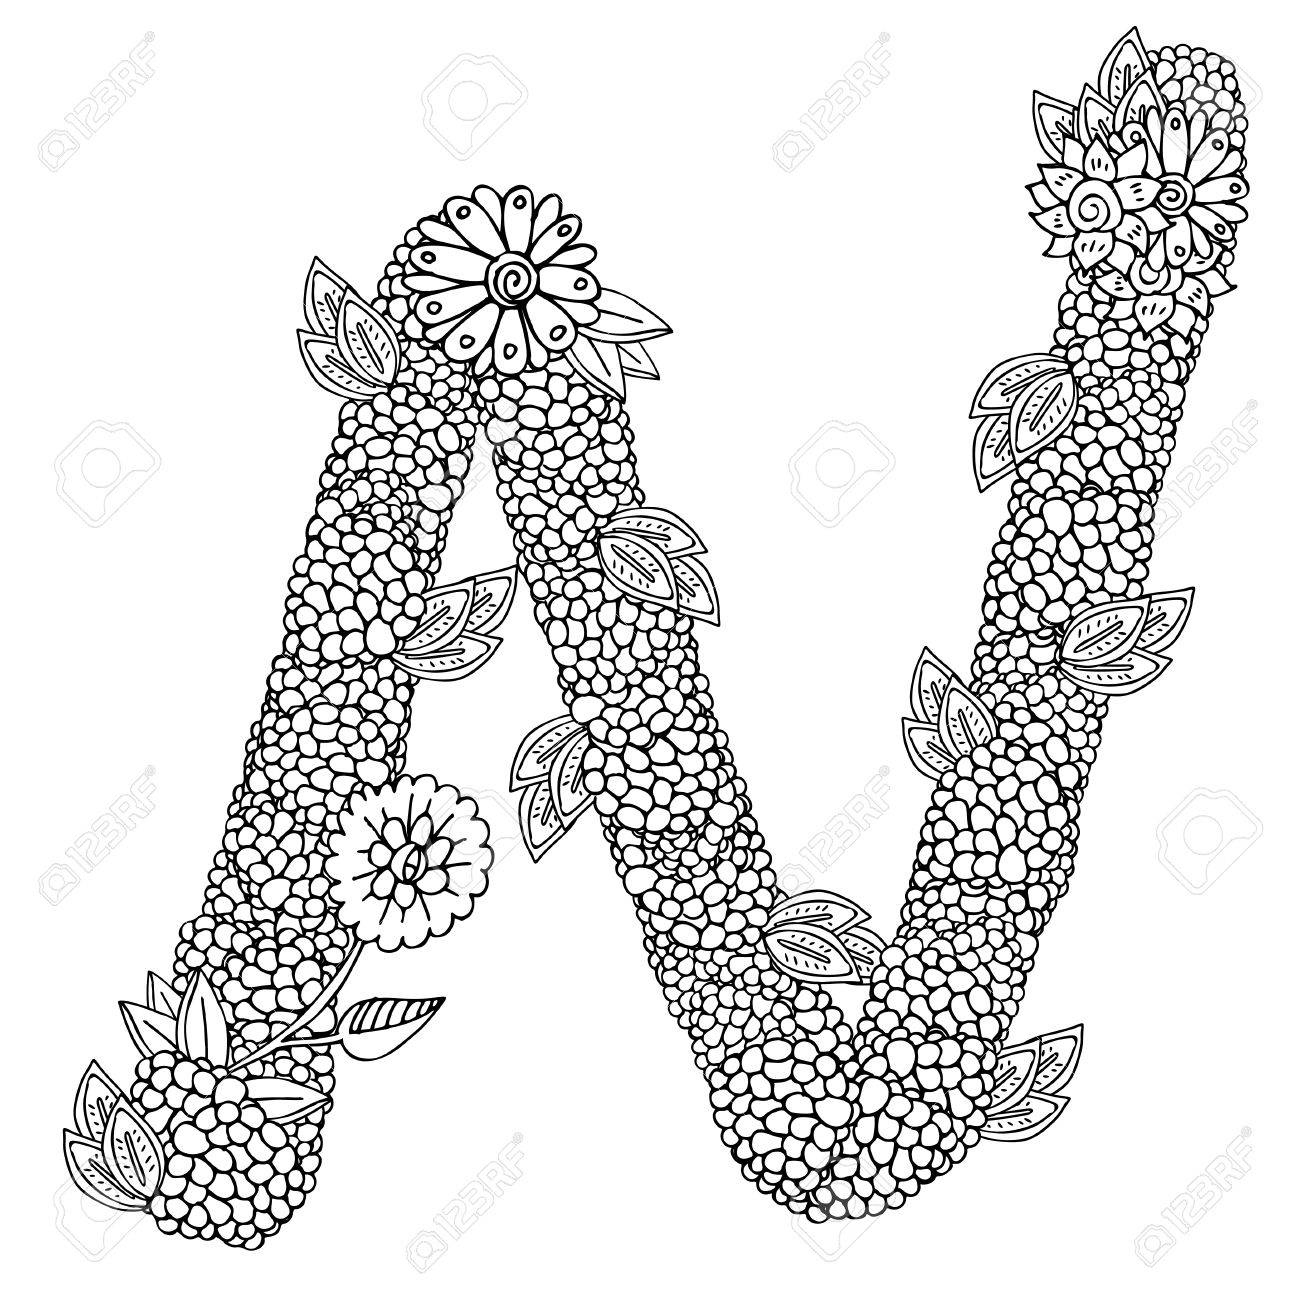 Shaped Pattern Of Capital Letter N Decorated With Floral Ornament Coloring Book Page For Adult